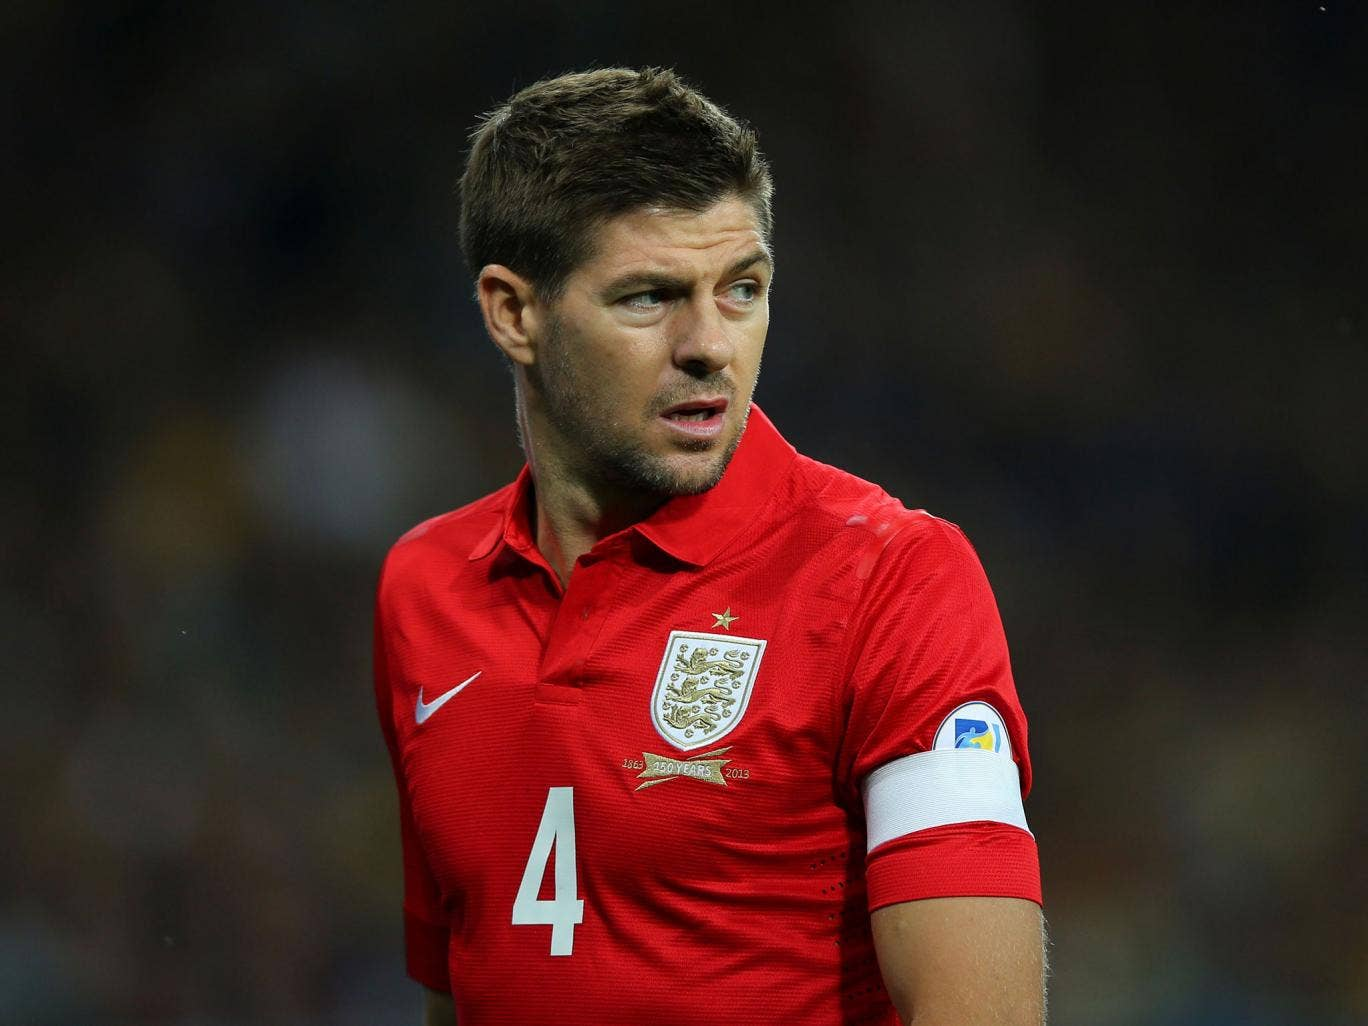 Liverpool manager Brendan Rodgers has admitted Steven Gerrard has a specific training regime in an attempt to prolong his Anfield career